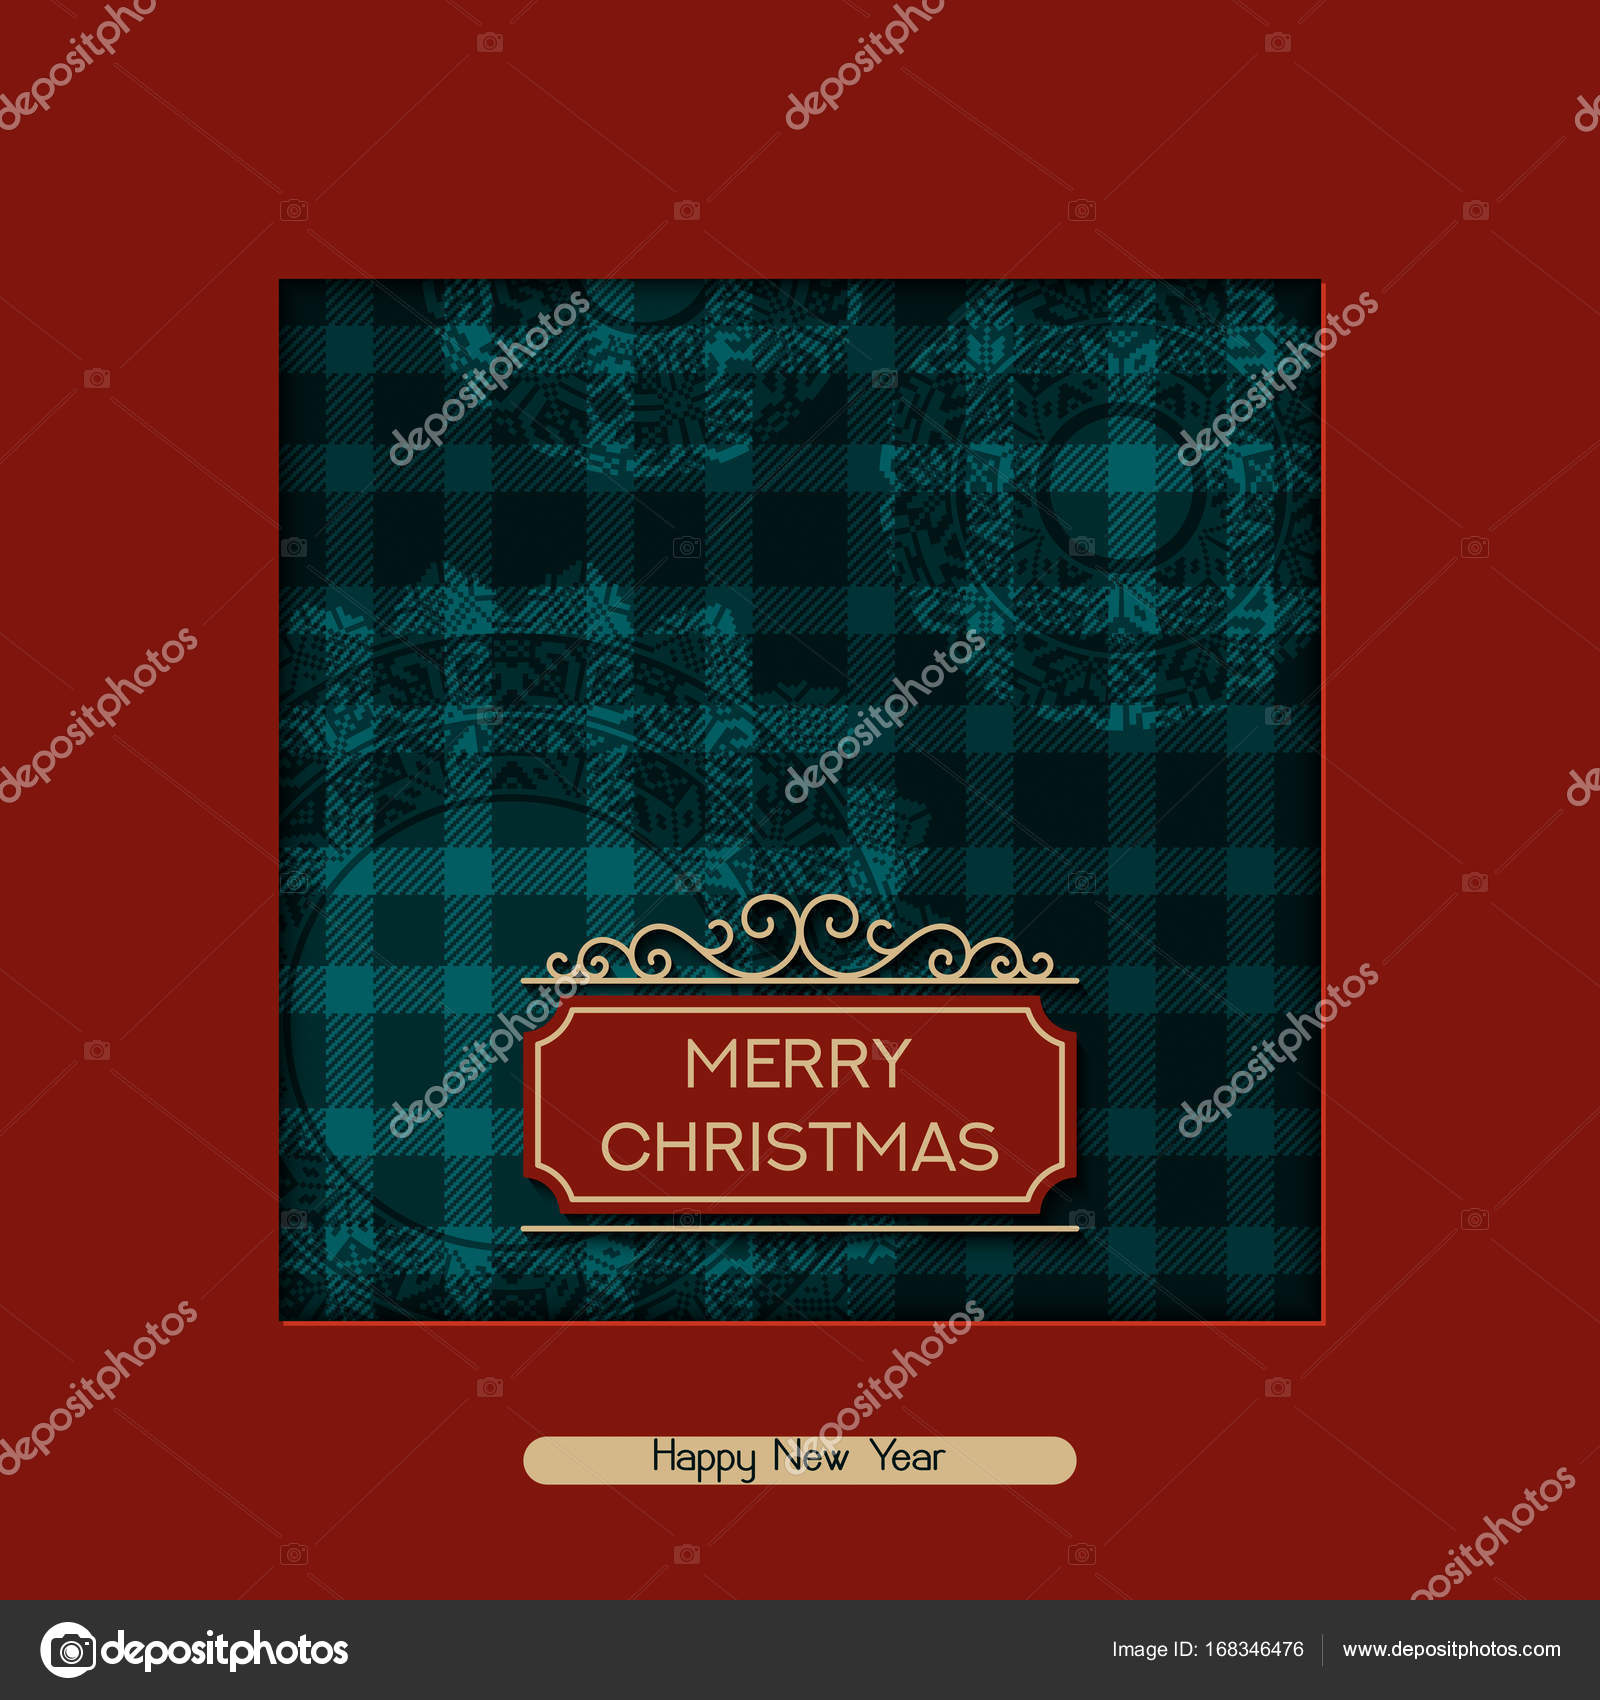 Vector holiday christmas postcard with greeting words tartan vector holiday christmas postcard with greeting words tartan pattern and snow whites design for m4hsunfo